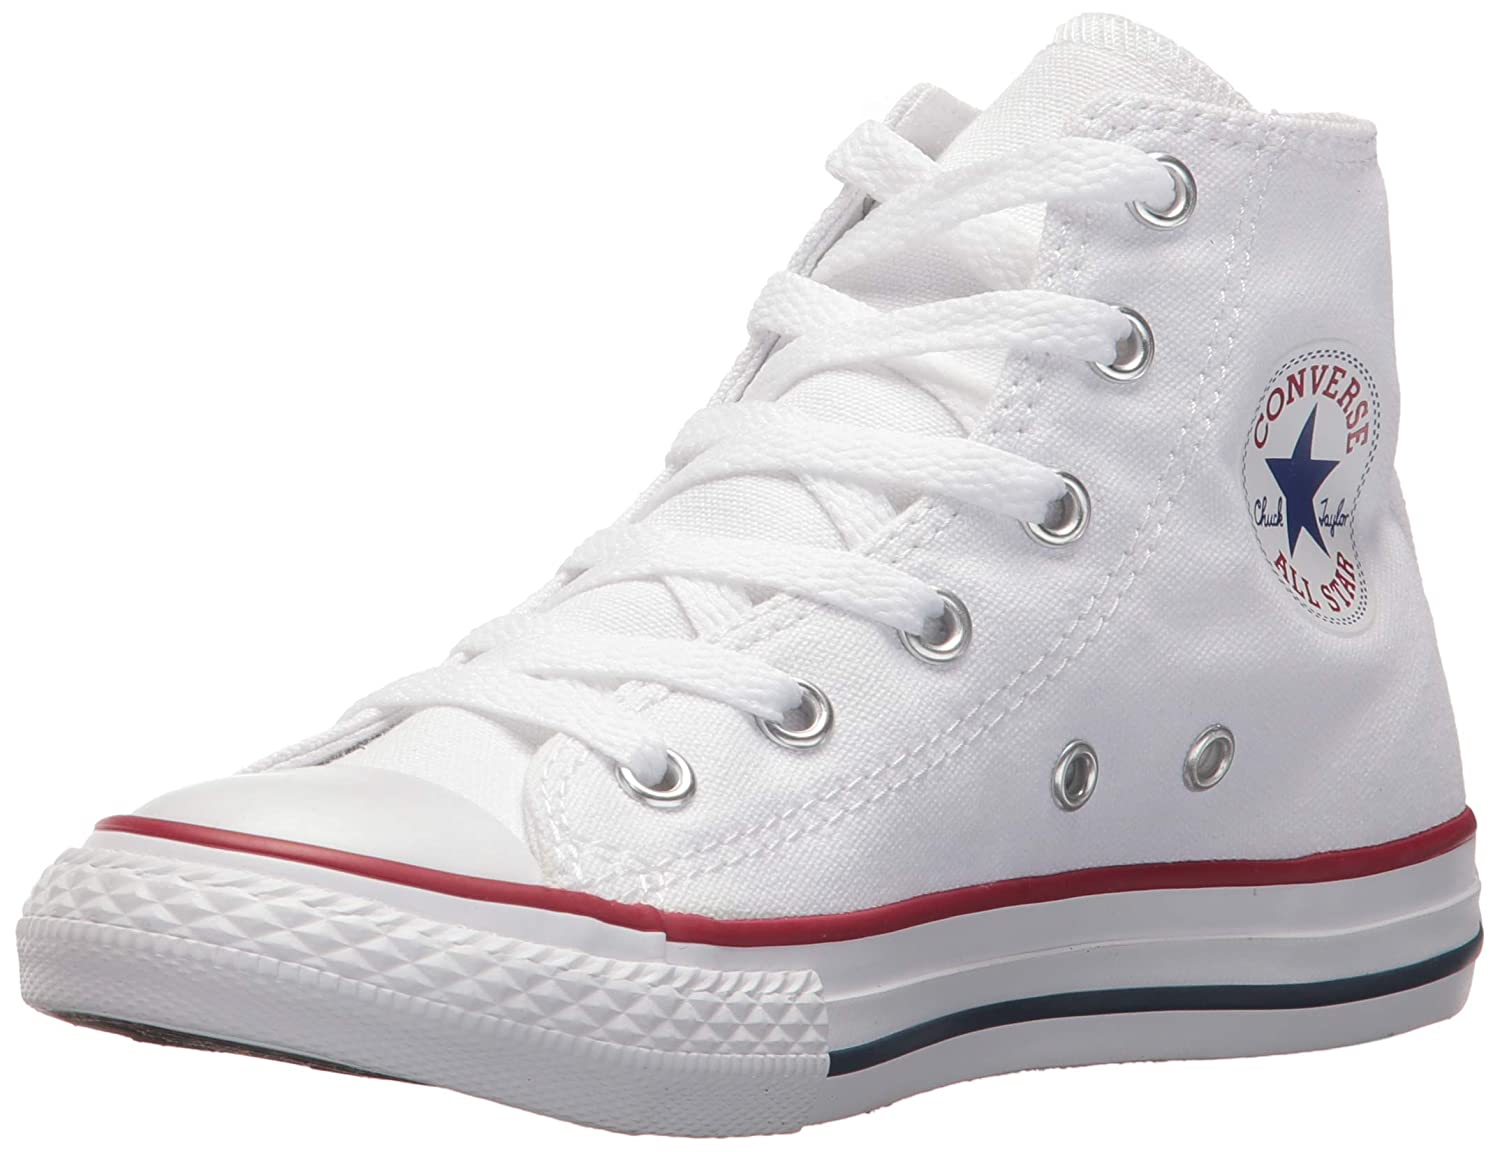 Converse Ctas adulte 17586 Core Hi, Baskets mode Converse mixte adulte 59fb71c - latesttechnology.space